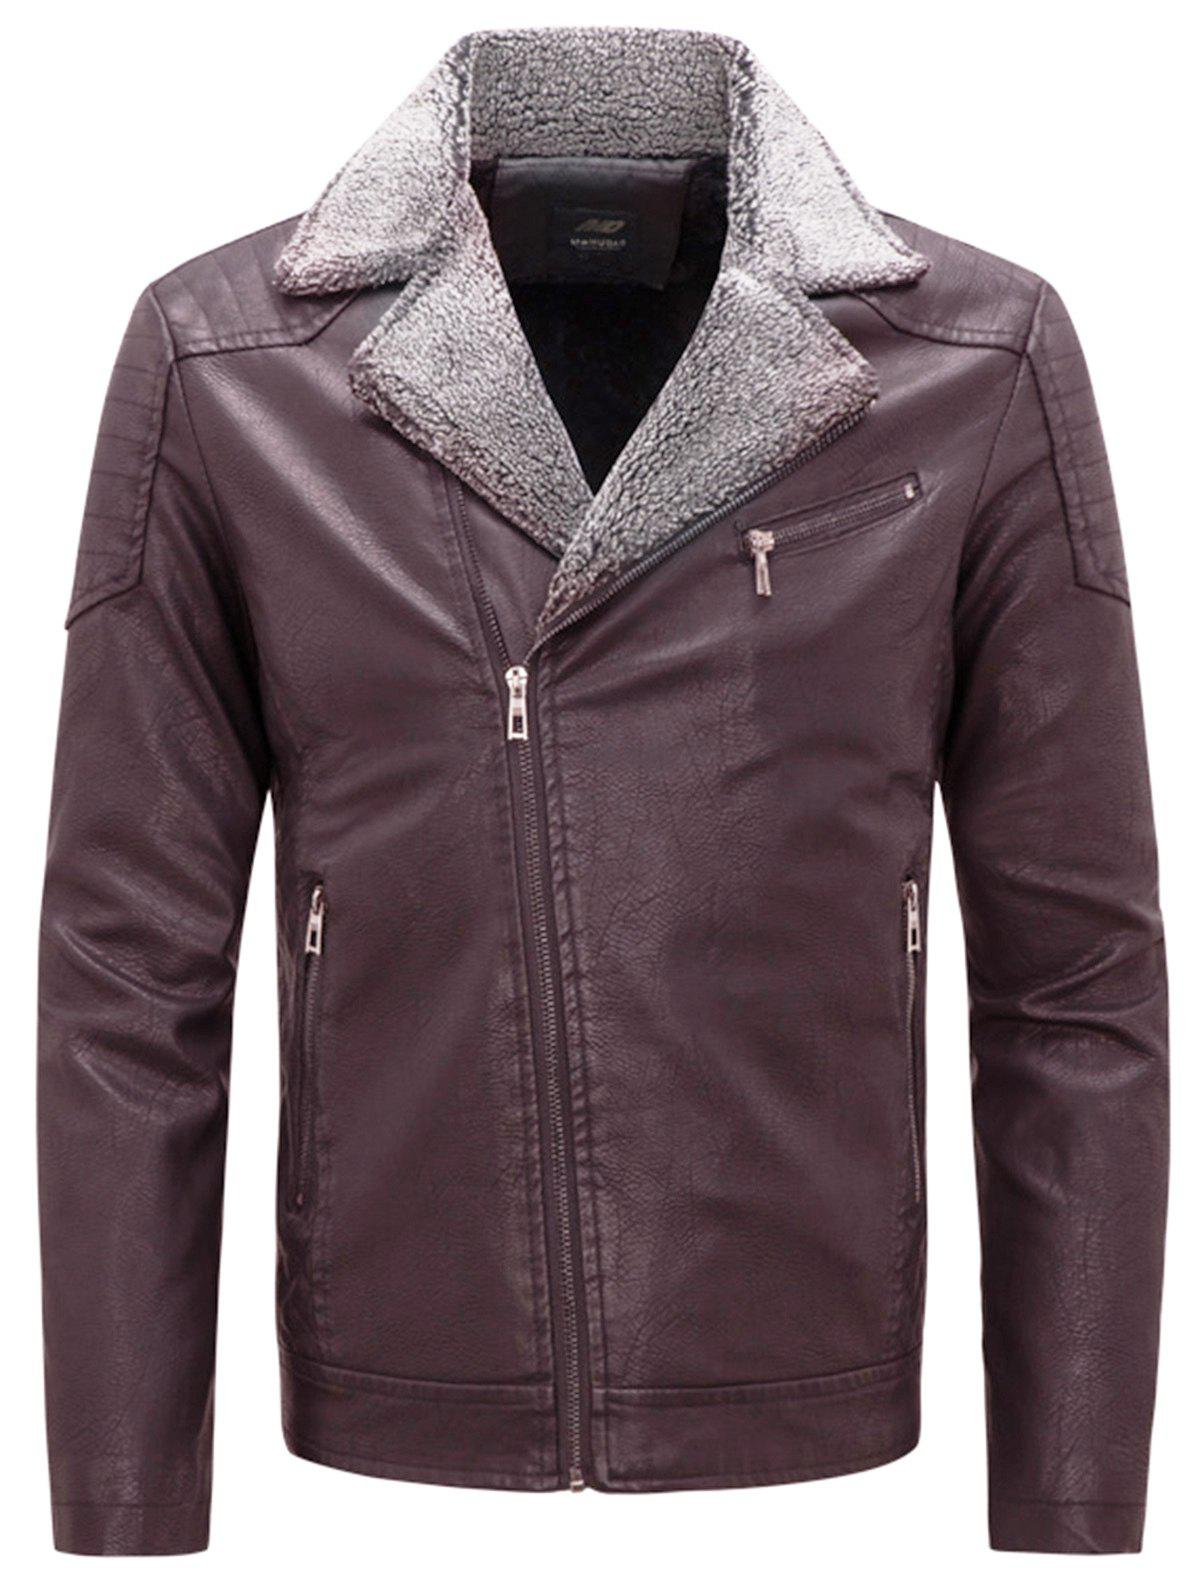 Zip Up Notch Lapel Faux Leather Jacket - WINE RED 2XL